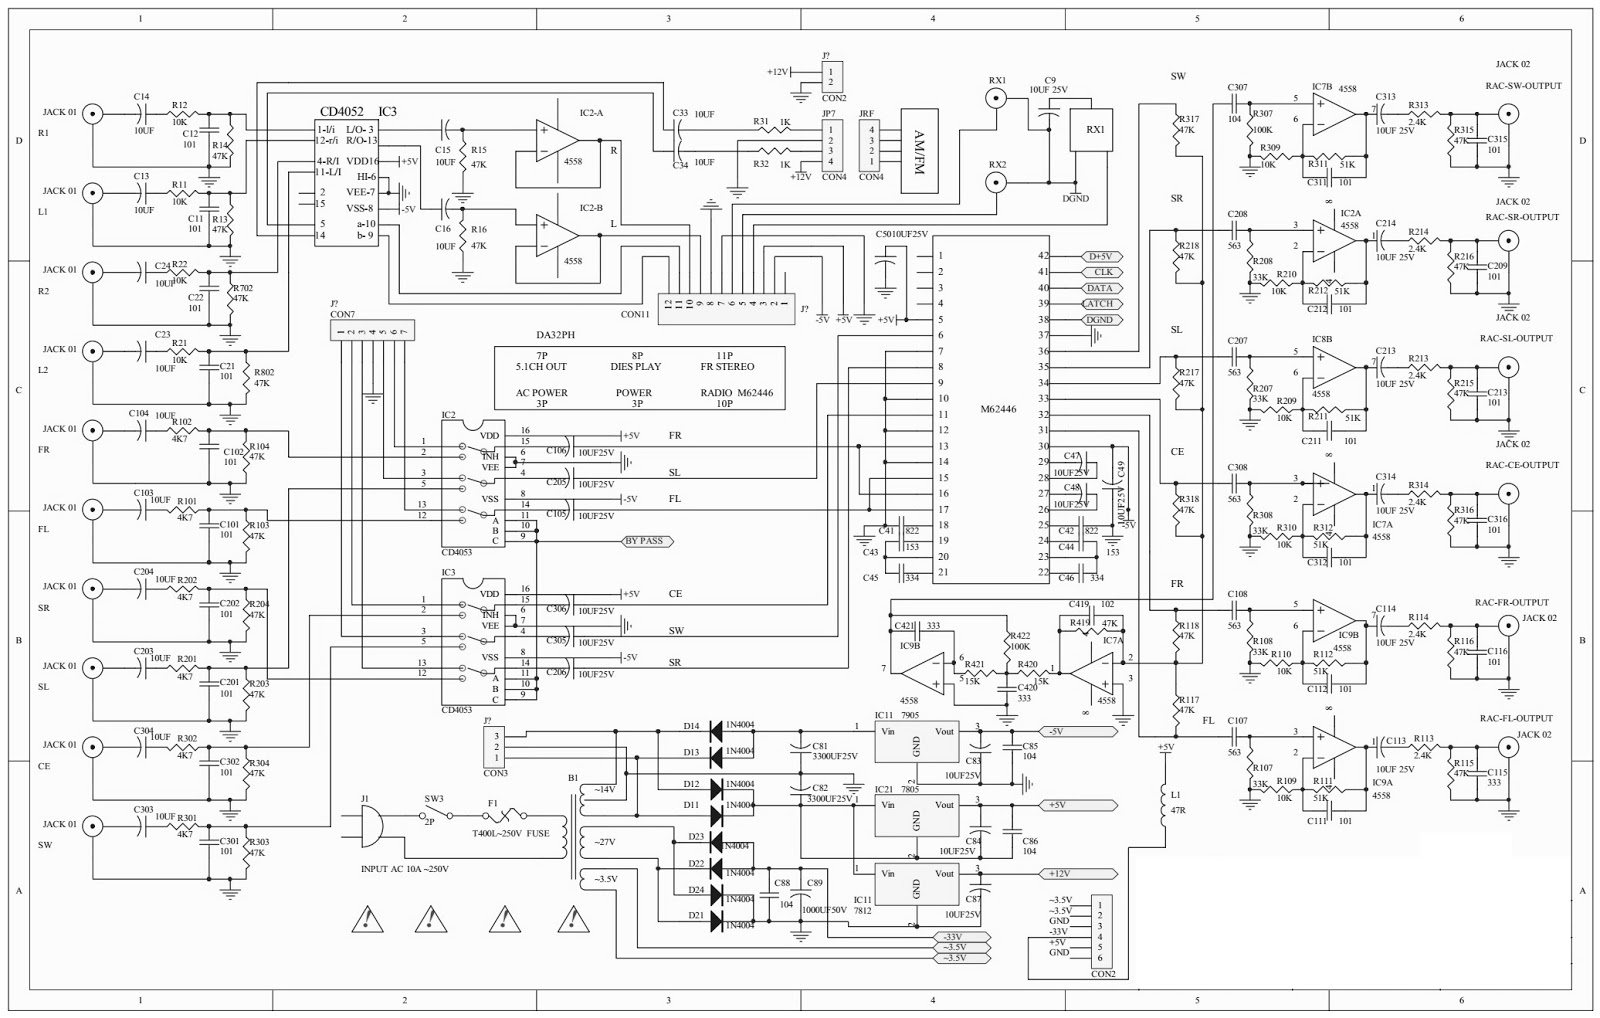 Microlab Ah500 Hts Circuit Diagram on transistor schematic diagram